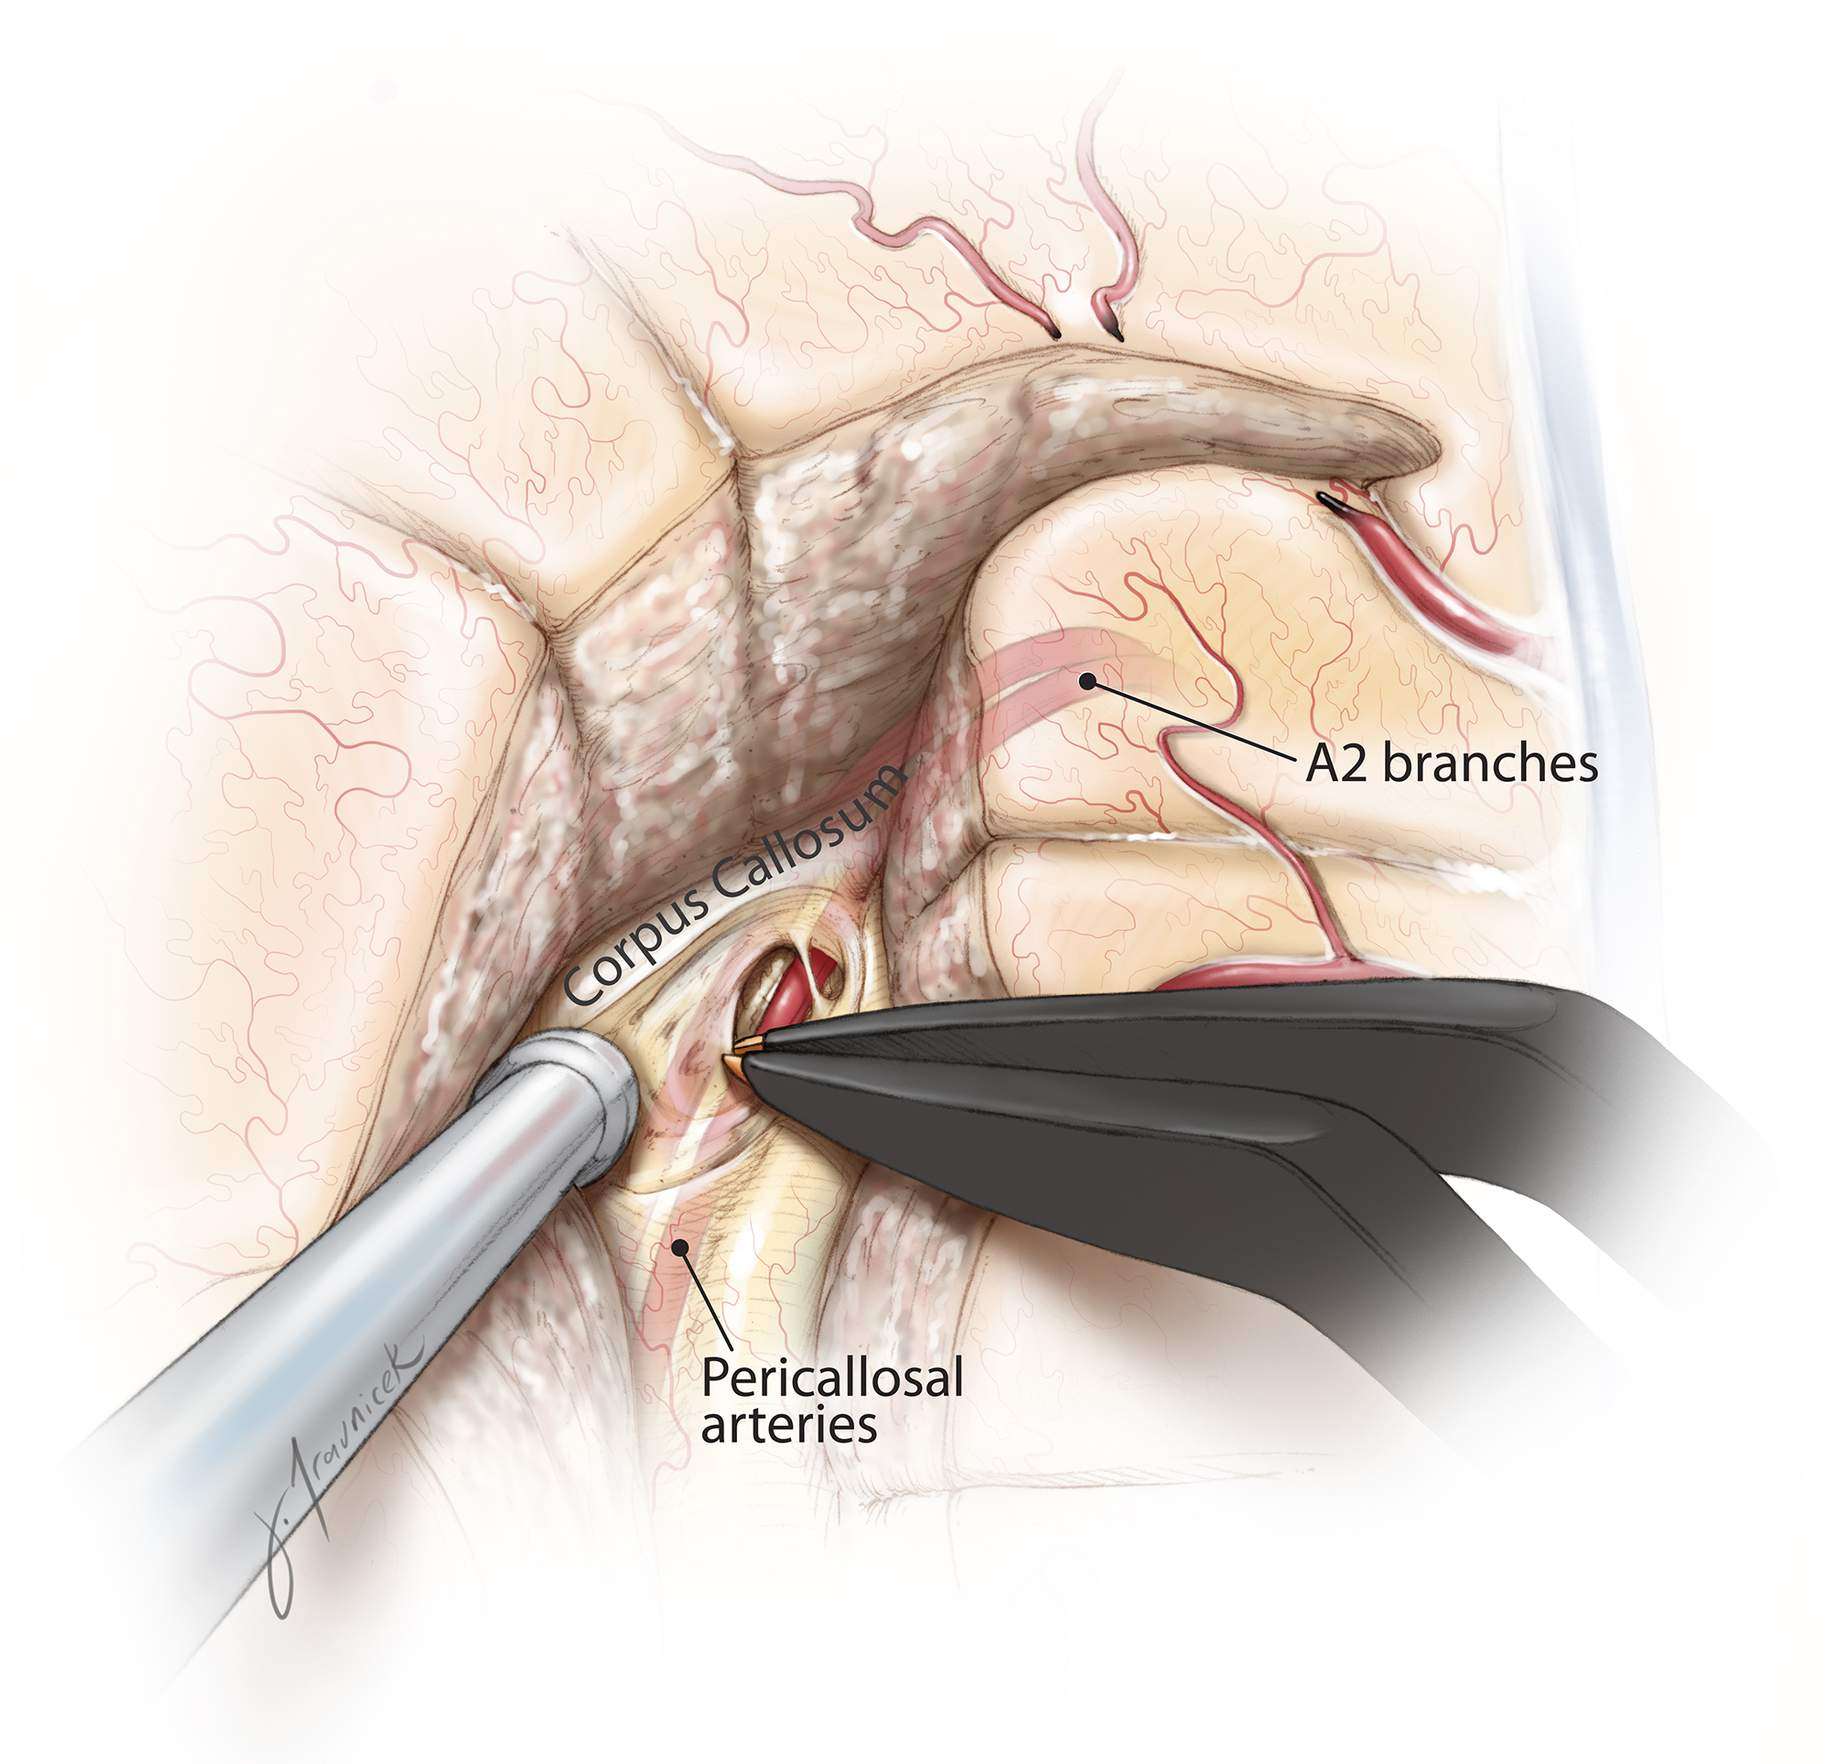 Figure 11: The junction of the septum pellucidum and the genu of corpus callosum serves as a landmark for starting the callosotomy, which is performed 4 to 5 mm from the midline due to the working angle provided by the transcortical transventricular access. During this step, neuronavigation can help confirm the correct plane of disconnection. I have not used ultrasound guidance because of the narrow transventricular operative corridor. The dissection is carried through the corpus callosum until the pericallosal arteries are identified within the callosal sulcus, just inferior to the cingulate gyrus. I find it helpful to place a small incision in the coronal plane to identify the artery, and then I continue with an incision in the parasagittal plane to start the callosotomy.